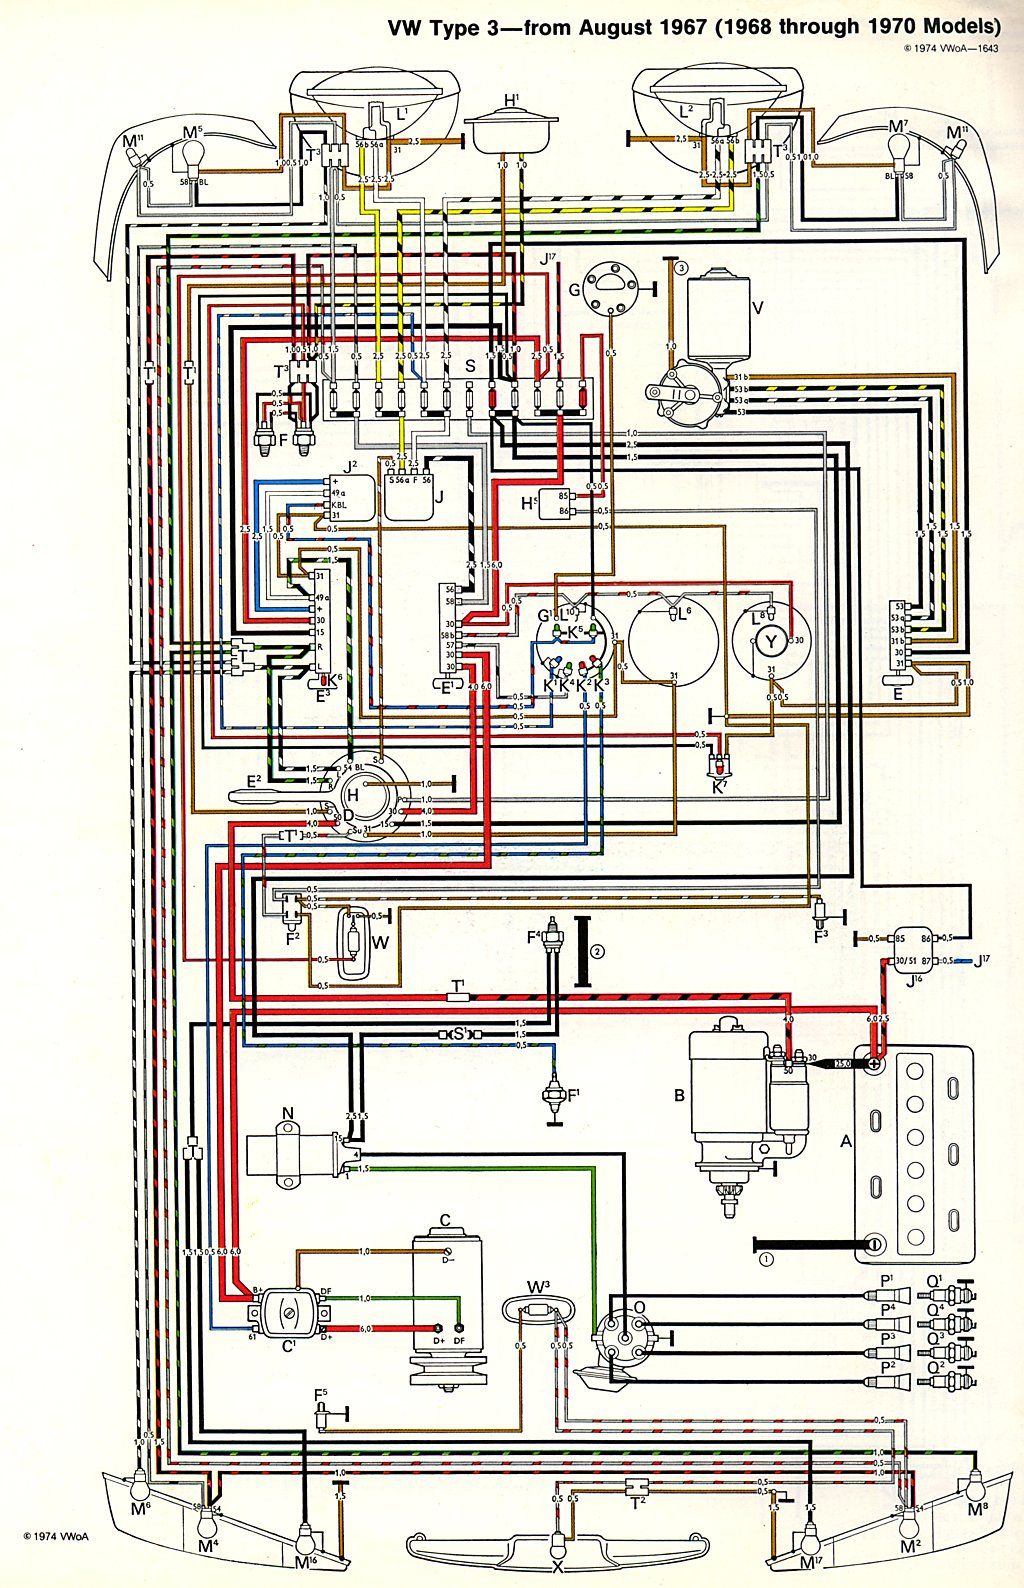 volkswagen wiring for 1969 wiring diagram schematics1969 vw bug fuse diagram wiring diagram schematics 1969 volkswagen type 3 volkswagen wiring for 1969